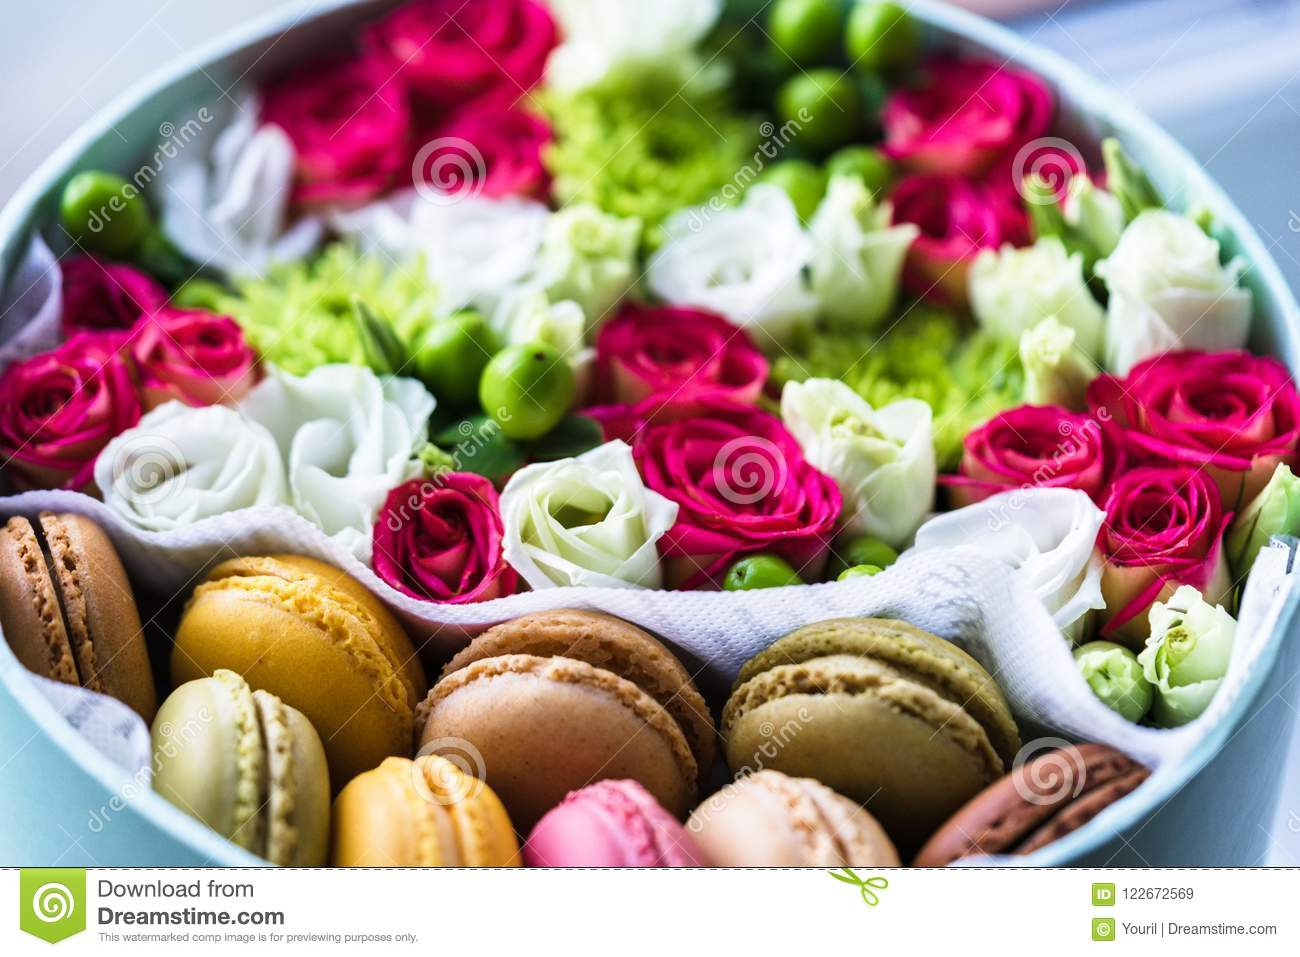 Flower Box With Macarons Good Idea For Friendly Gift Stock Image Image Of Confectionery Mockup 122672569